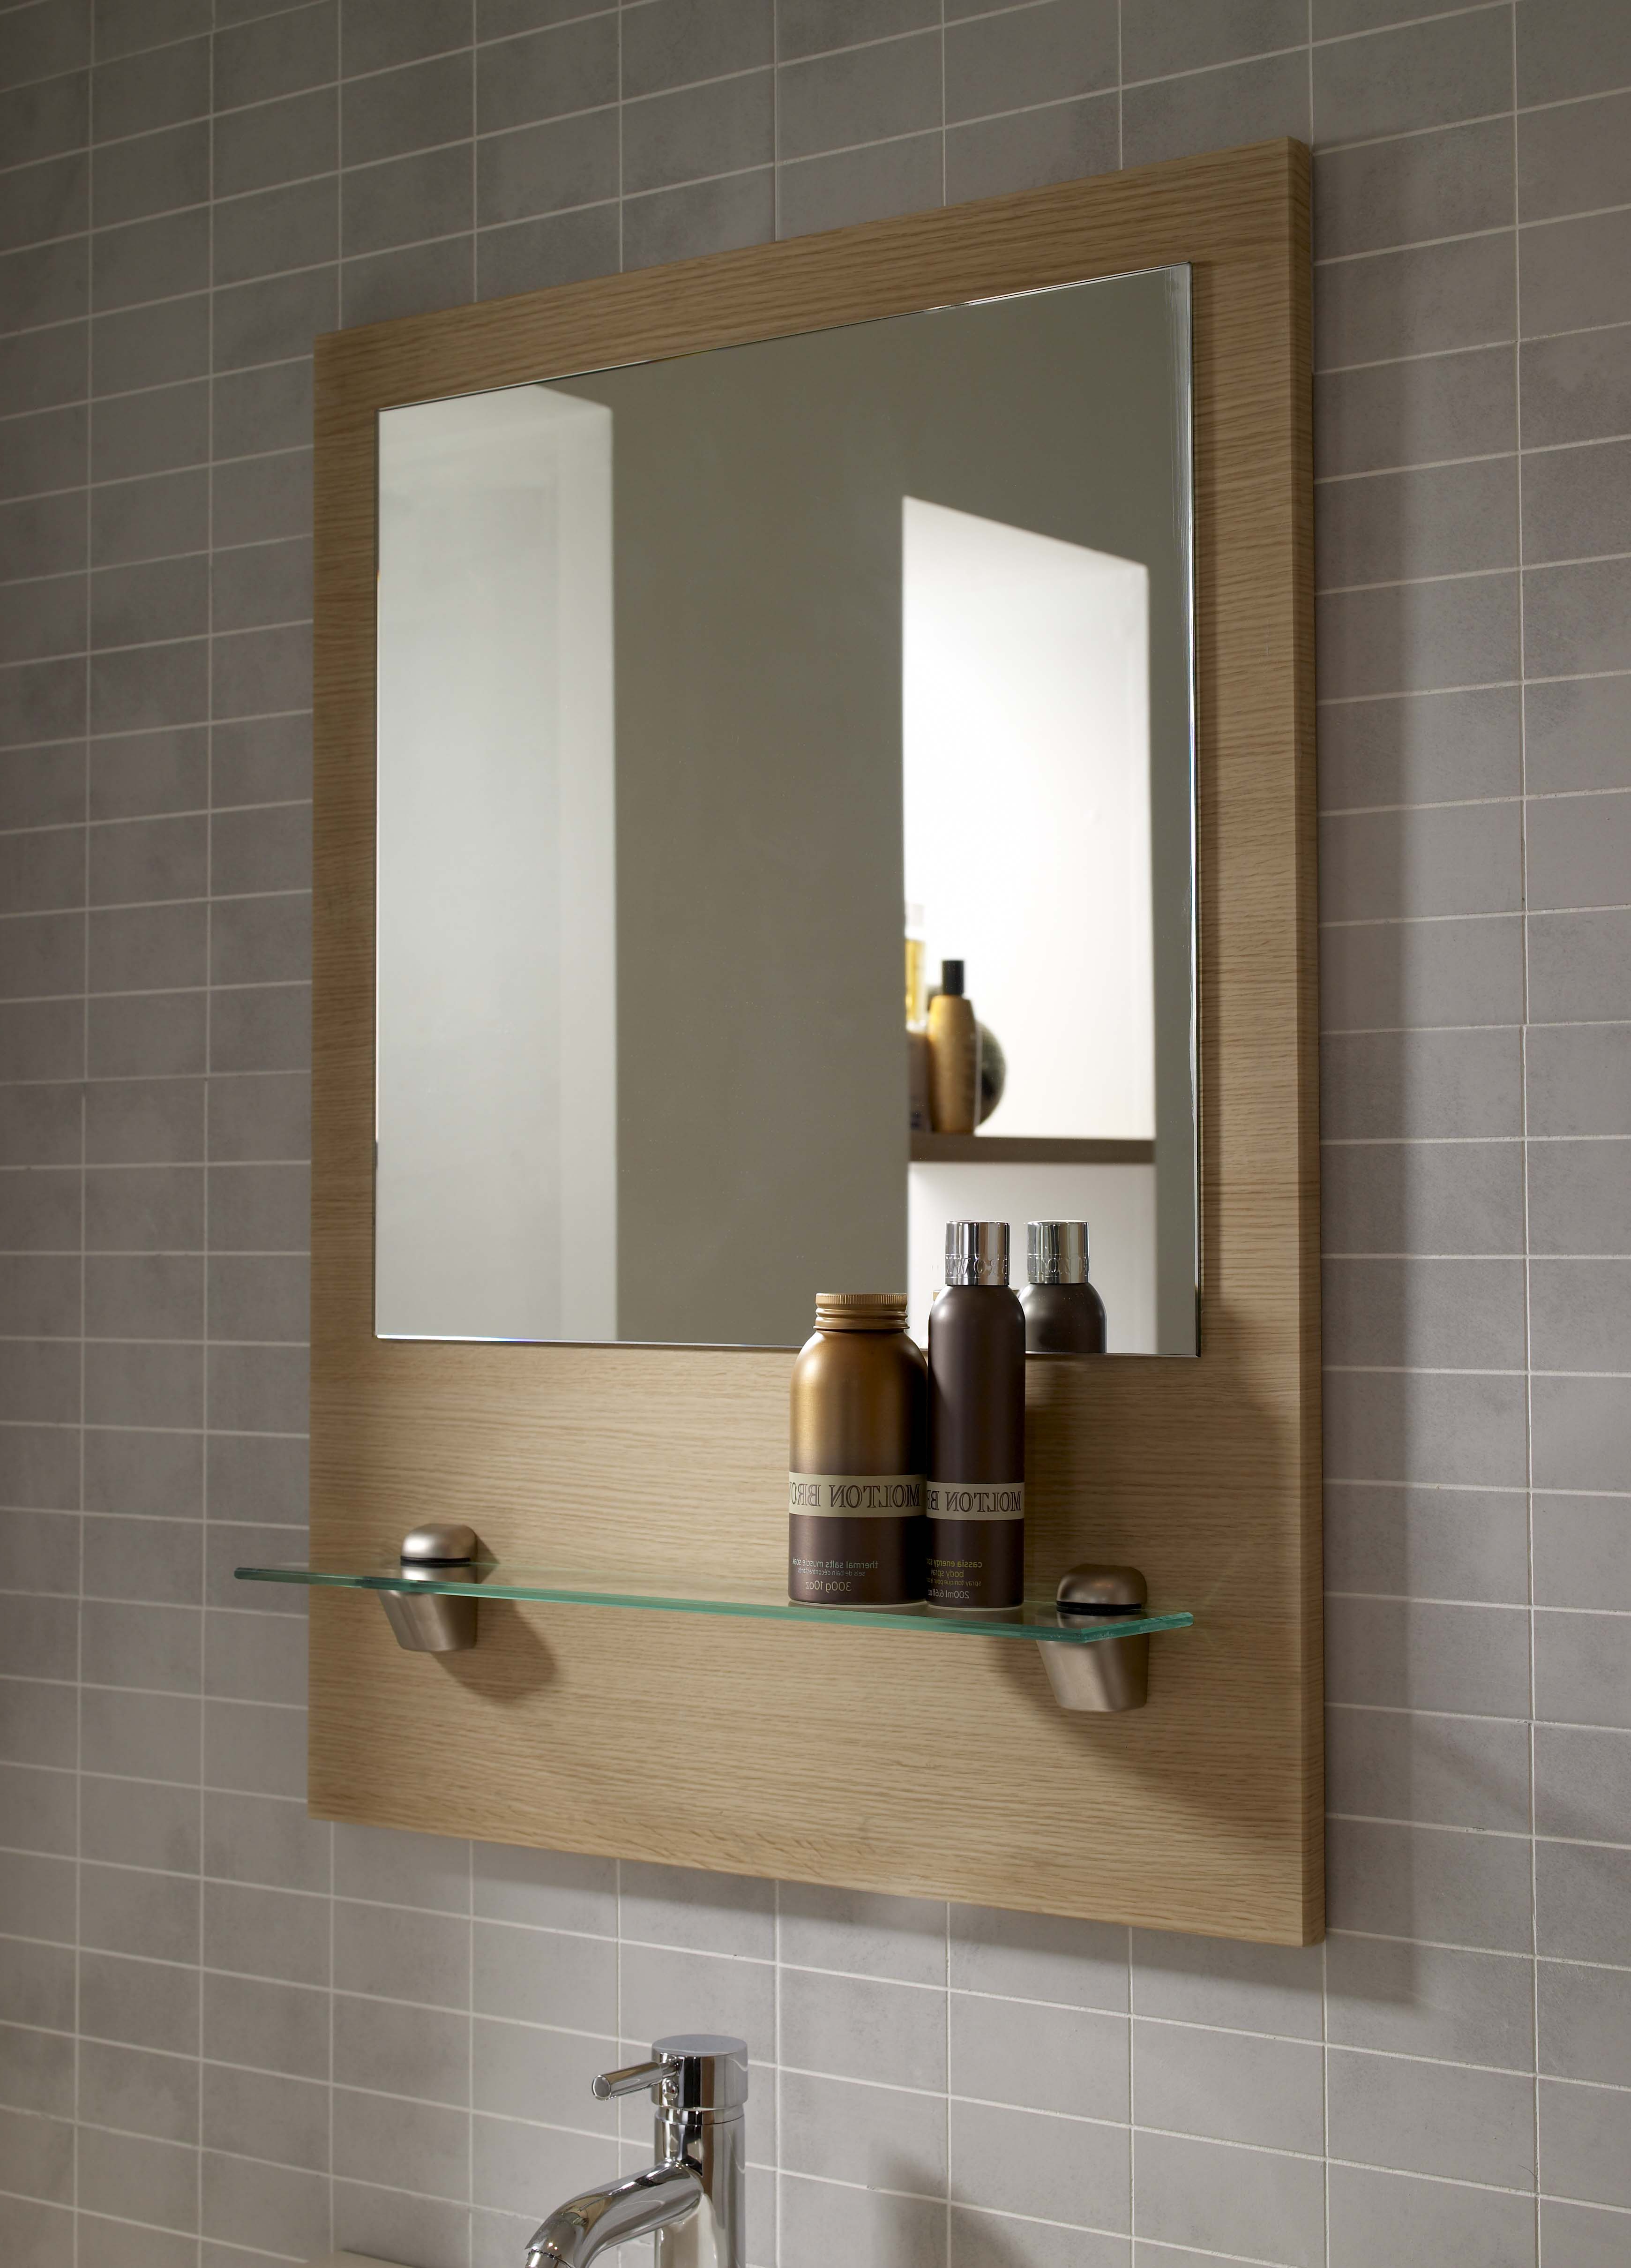 Newest Peetz Modern Rustic Accent Mirrors For Framed Modern Mirror Metal Framed Peetz Modern Rustic Accent Mirror (View 18 of 20)